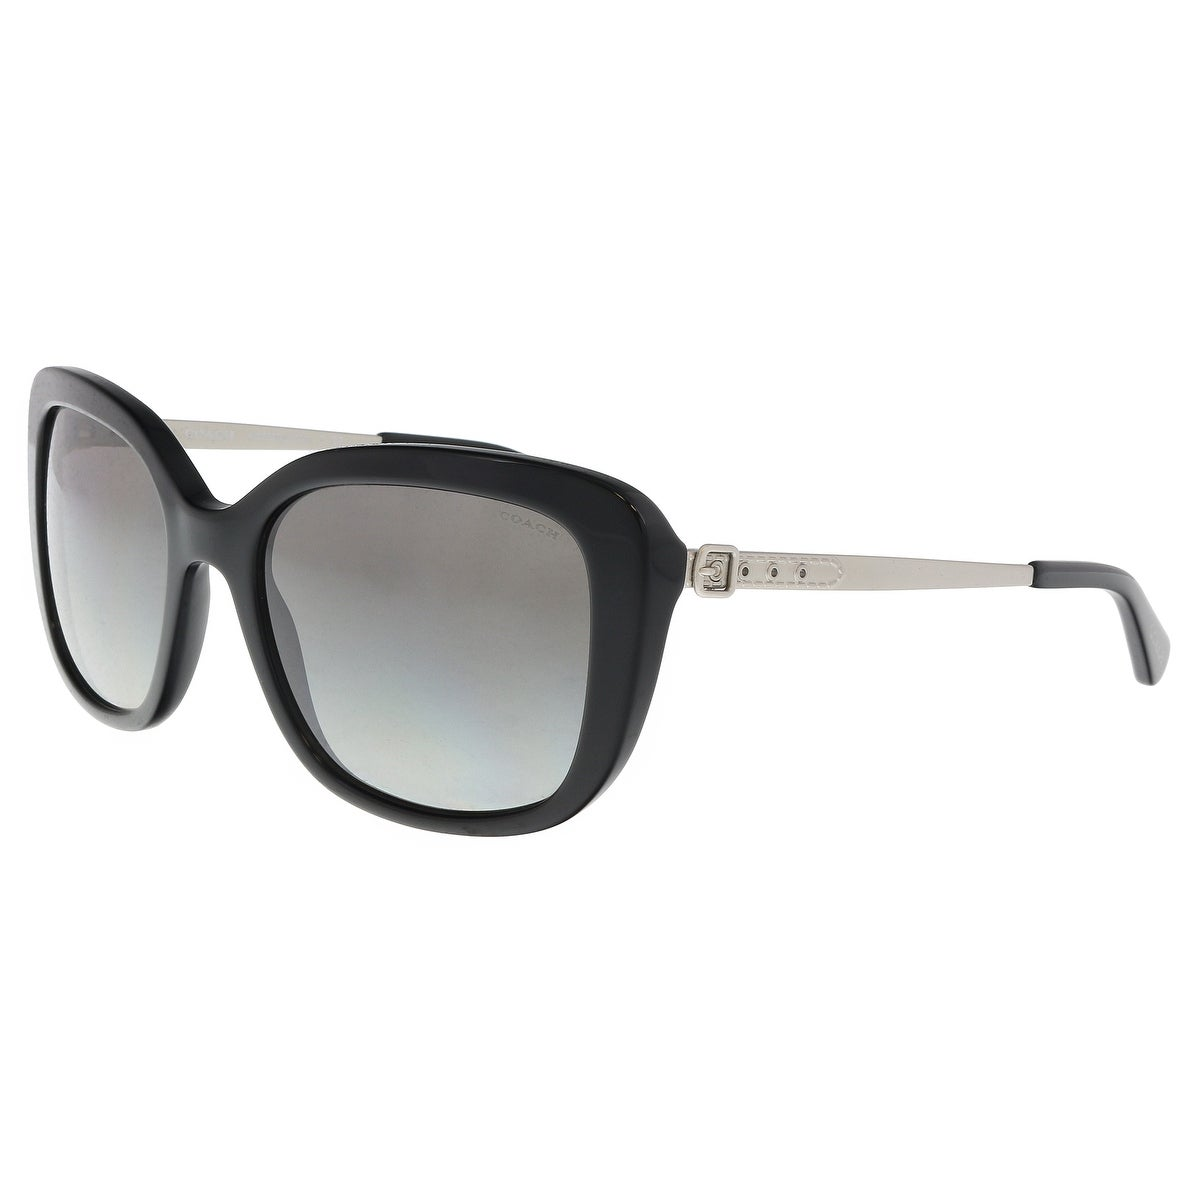 84a974862ccb Coach Women's Sunglasses | Find Great Sunglasses Deals Shopping at Overstock